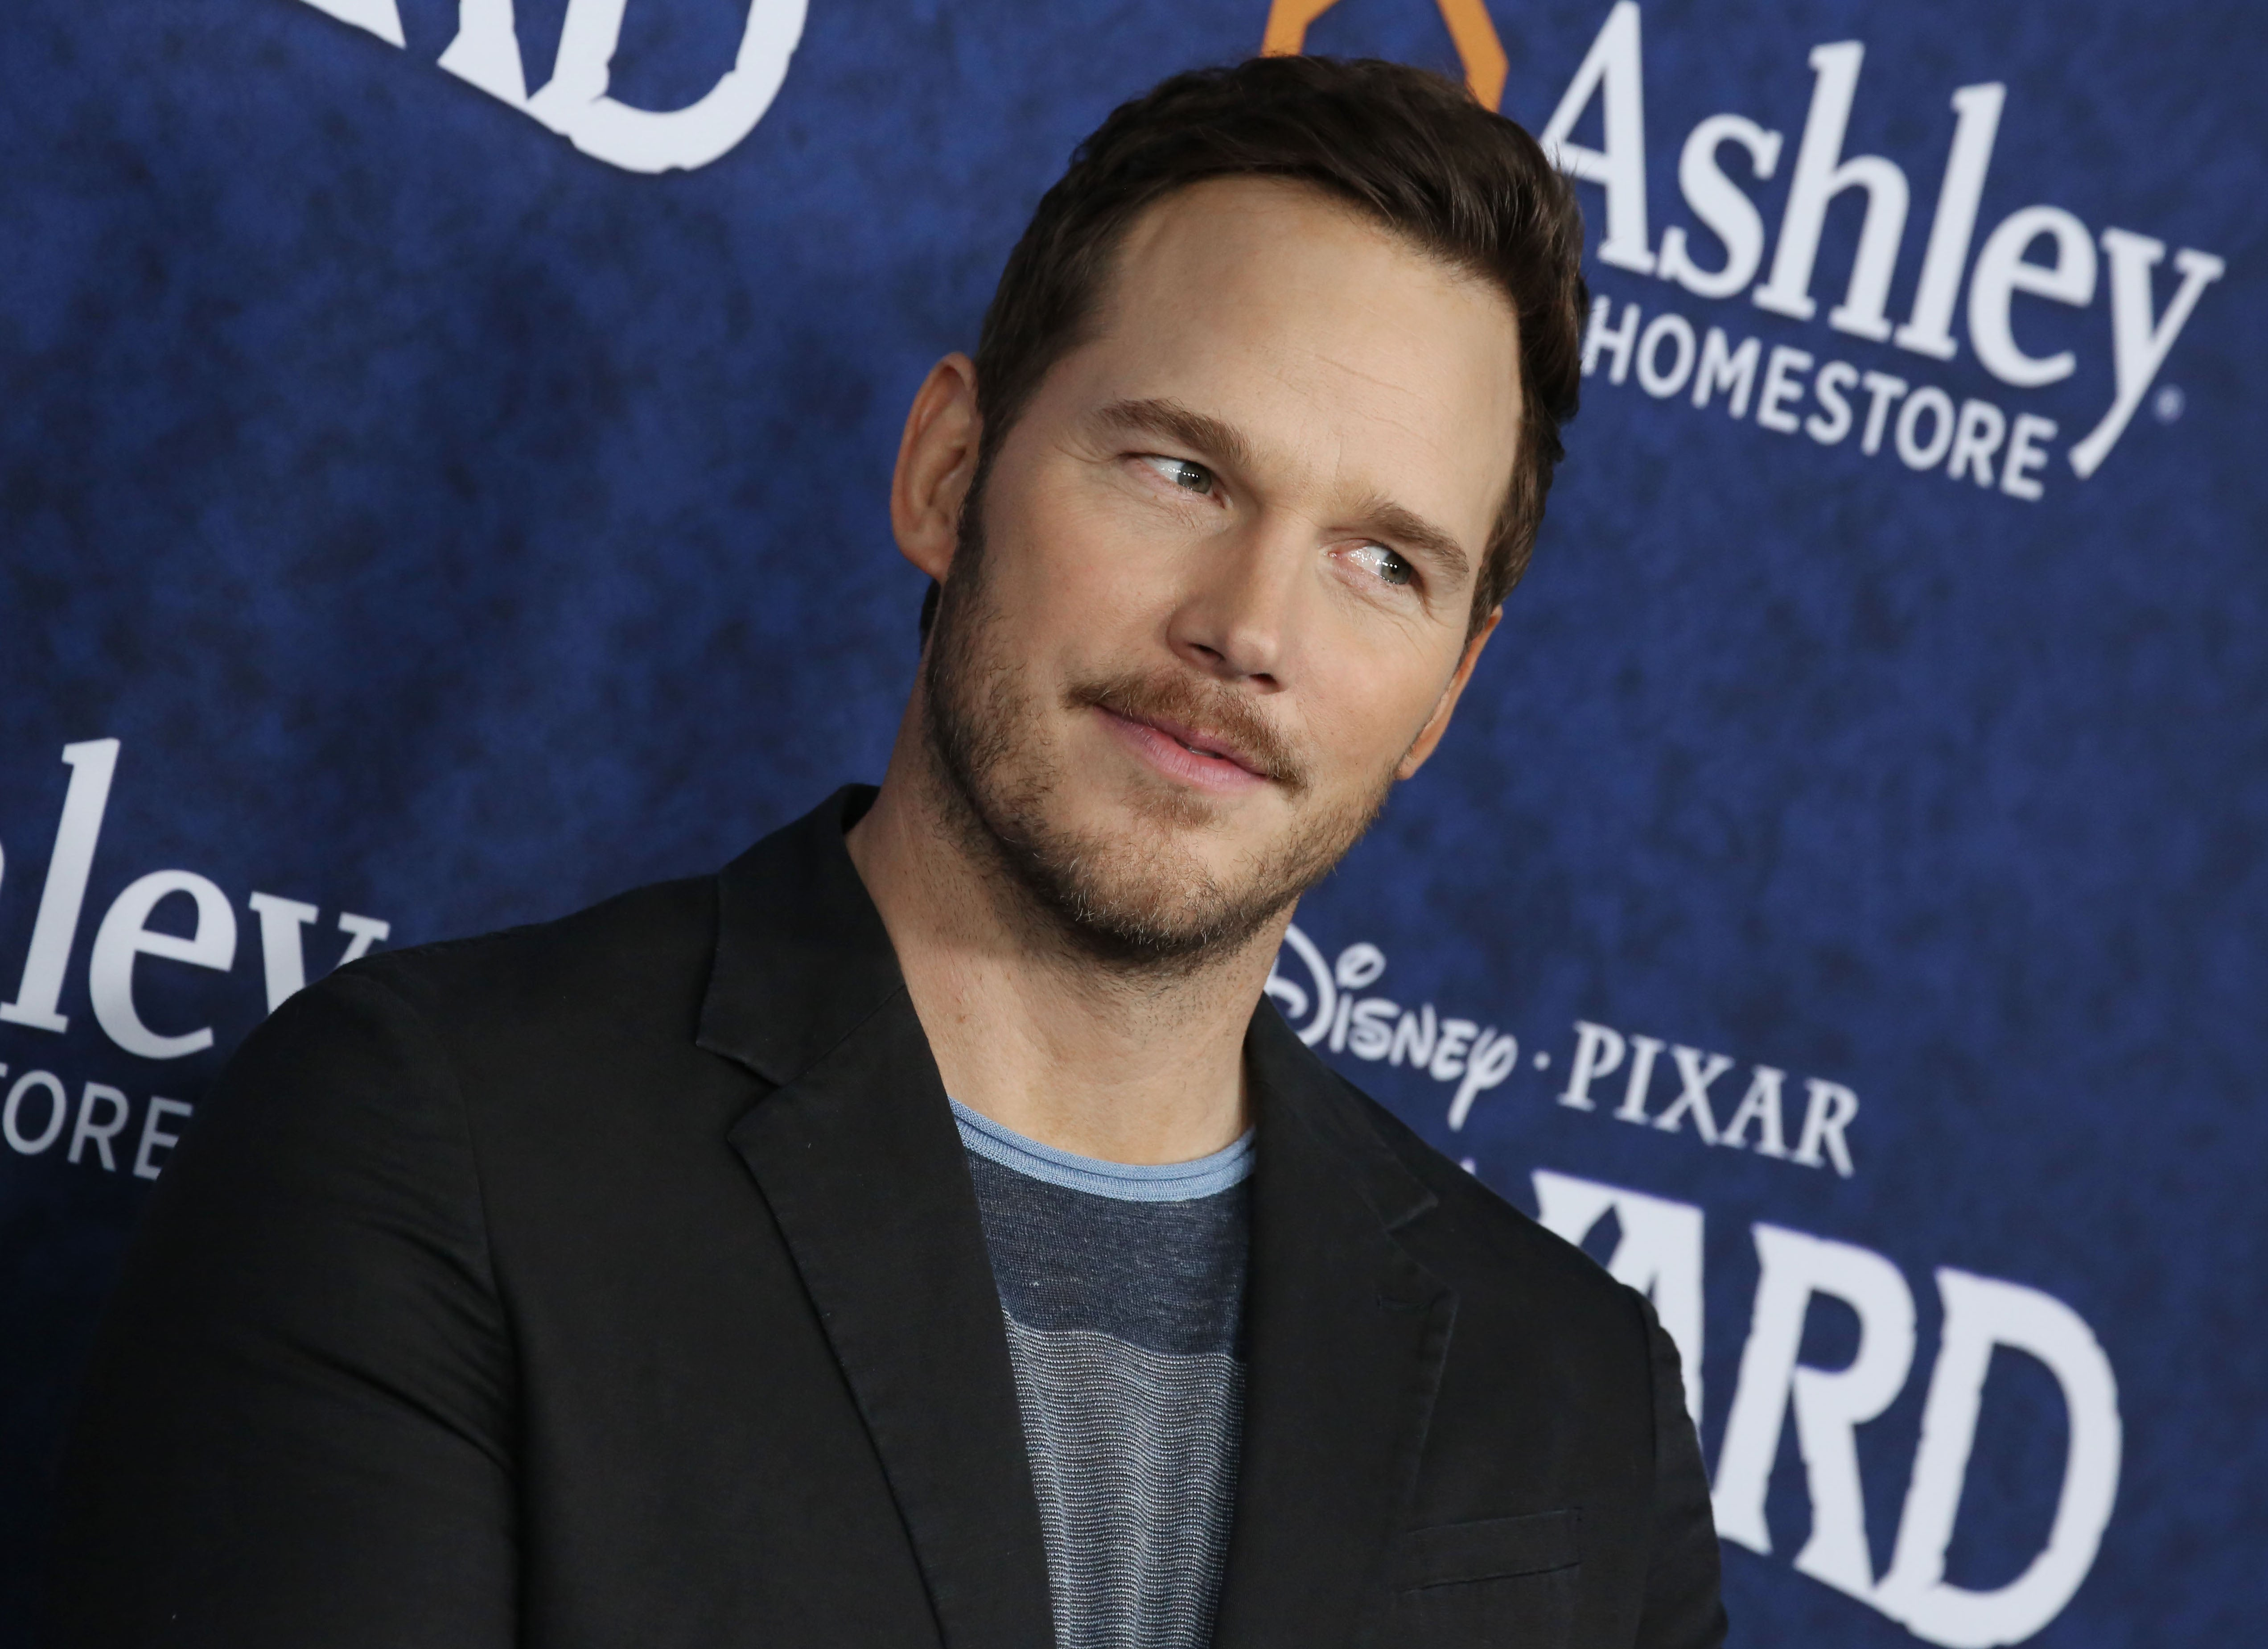 Avengers stars defend Chris Pratt after he's dubbed 'worst Hollywood Chris'